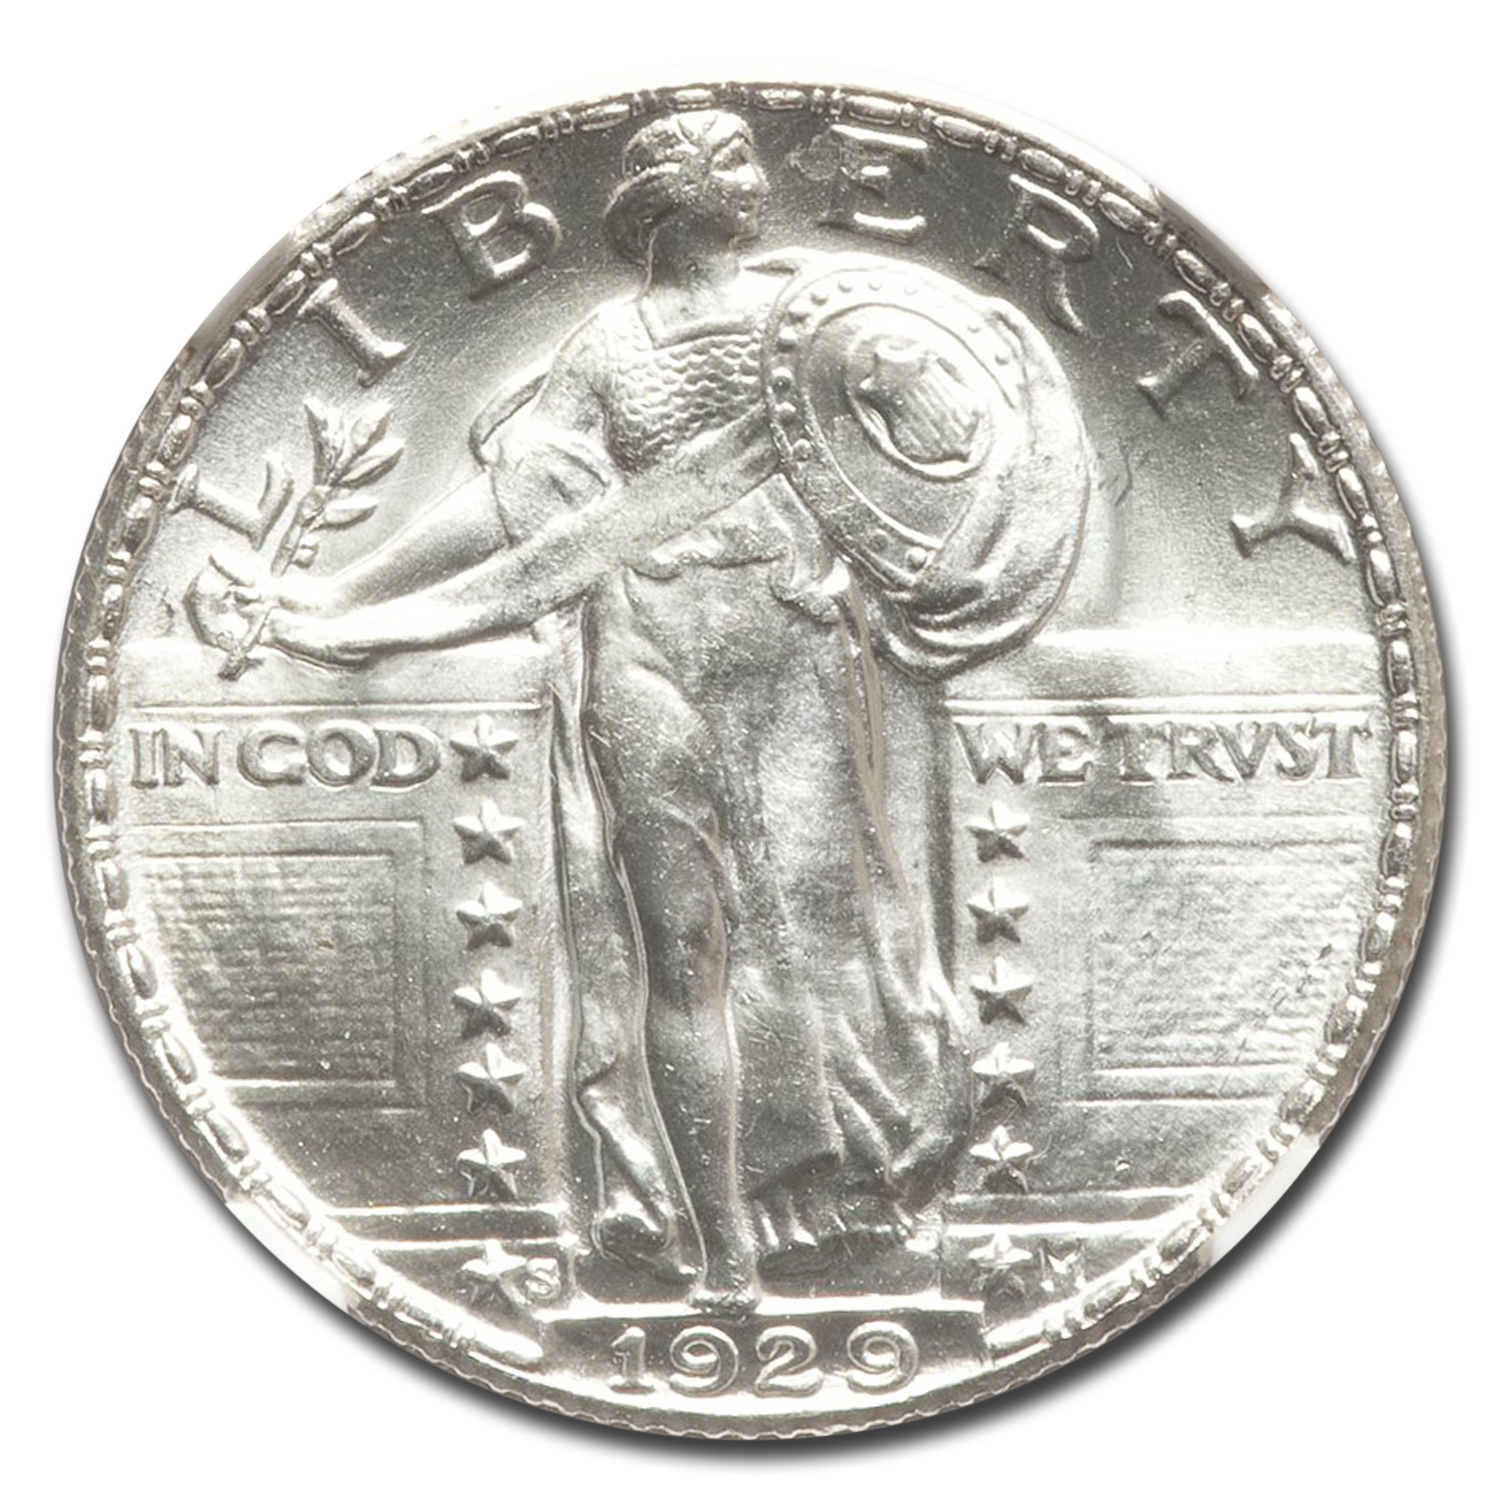 1929-S Standing Liberty Quarter MS-67 NGC (FH)